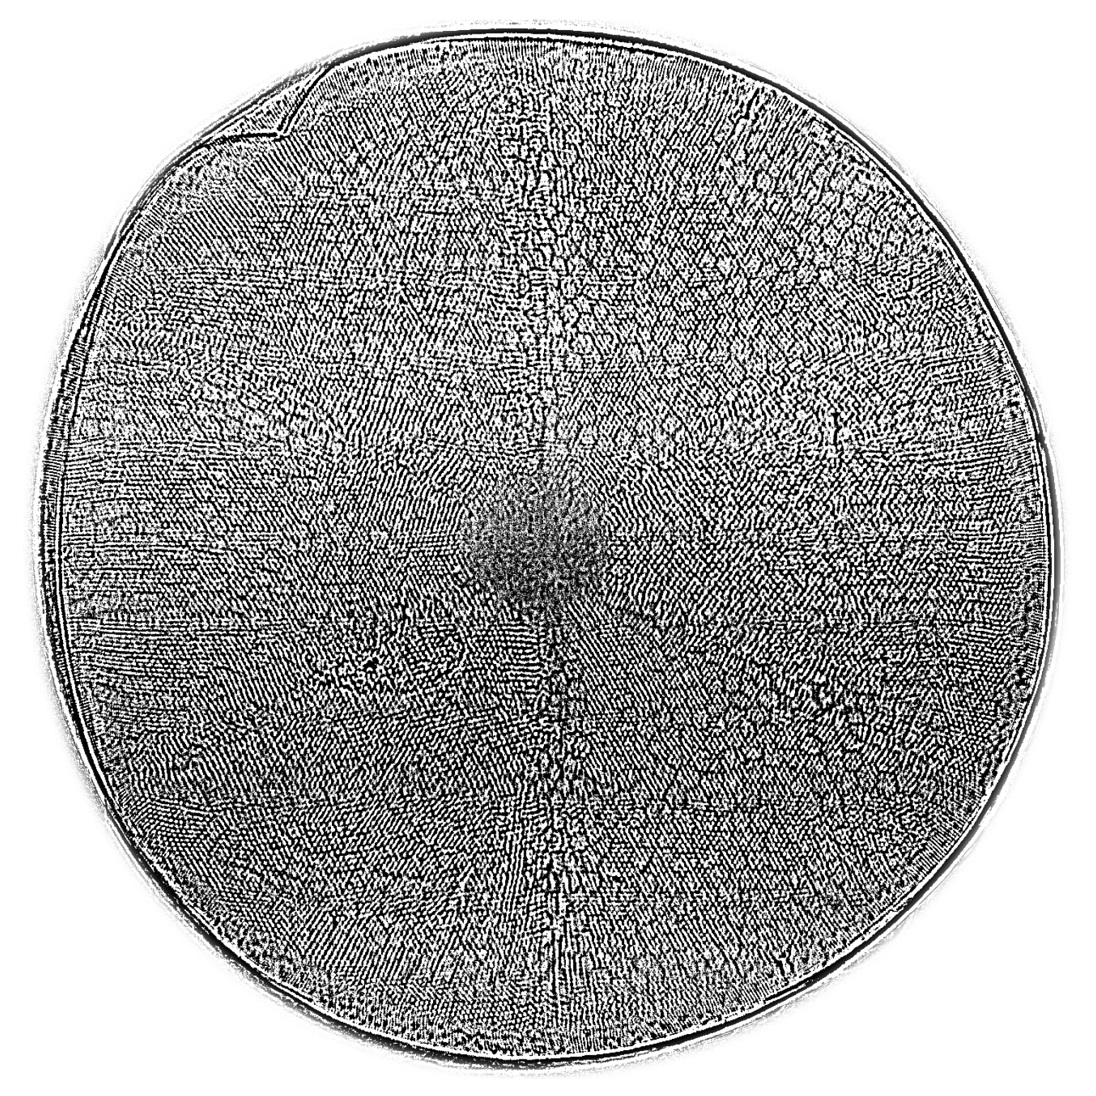 The silica shell of the diatom Actinoptychus senarius, measuring only 0.1 mm across